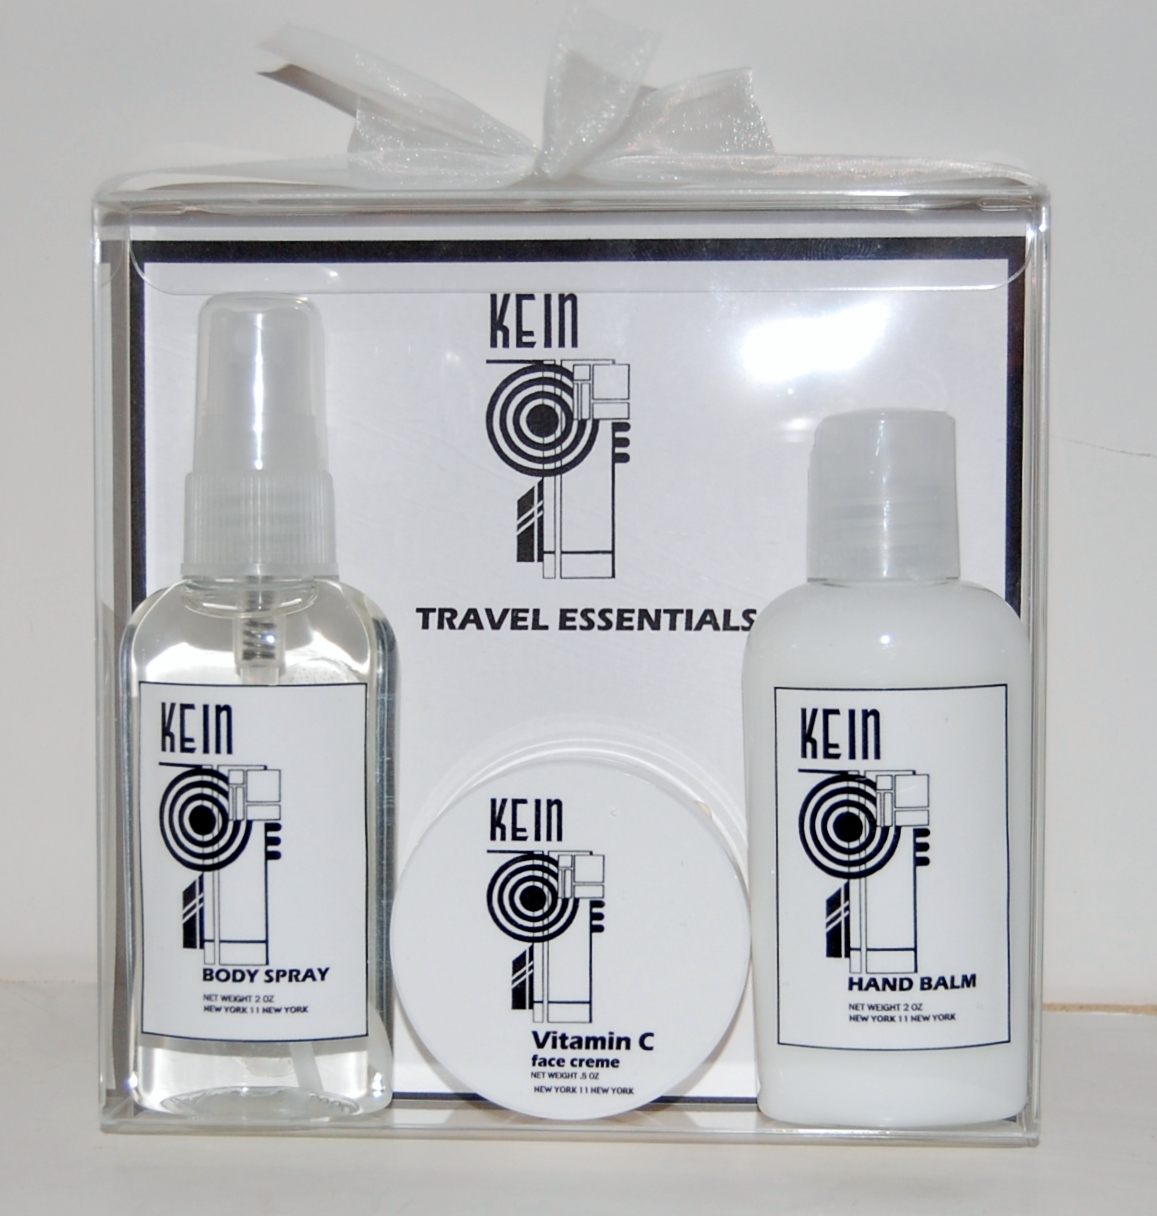 KEIN Travel Essentials